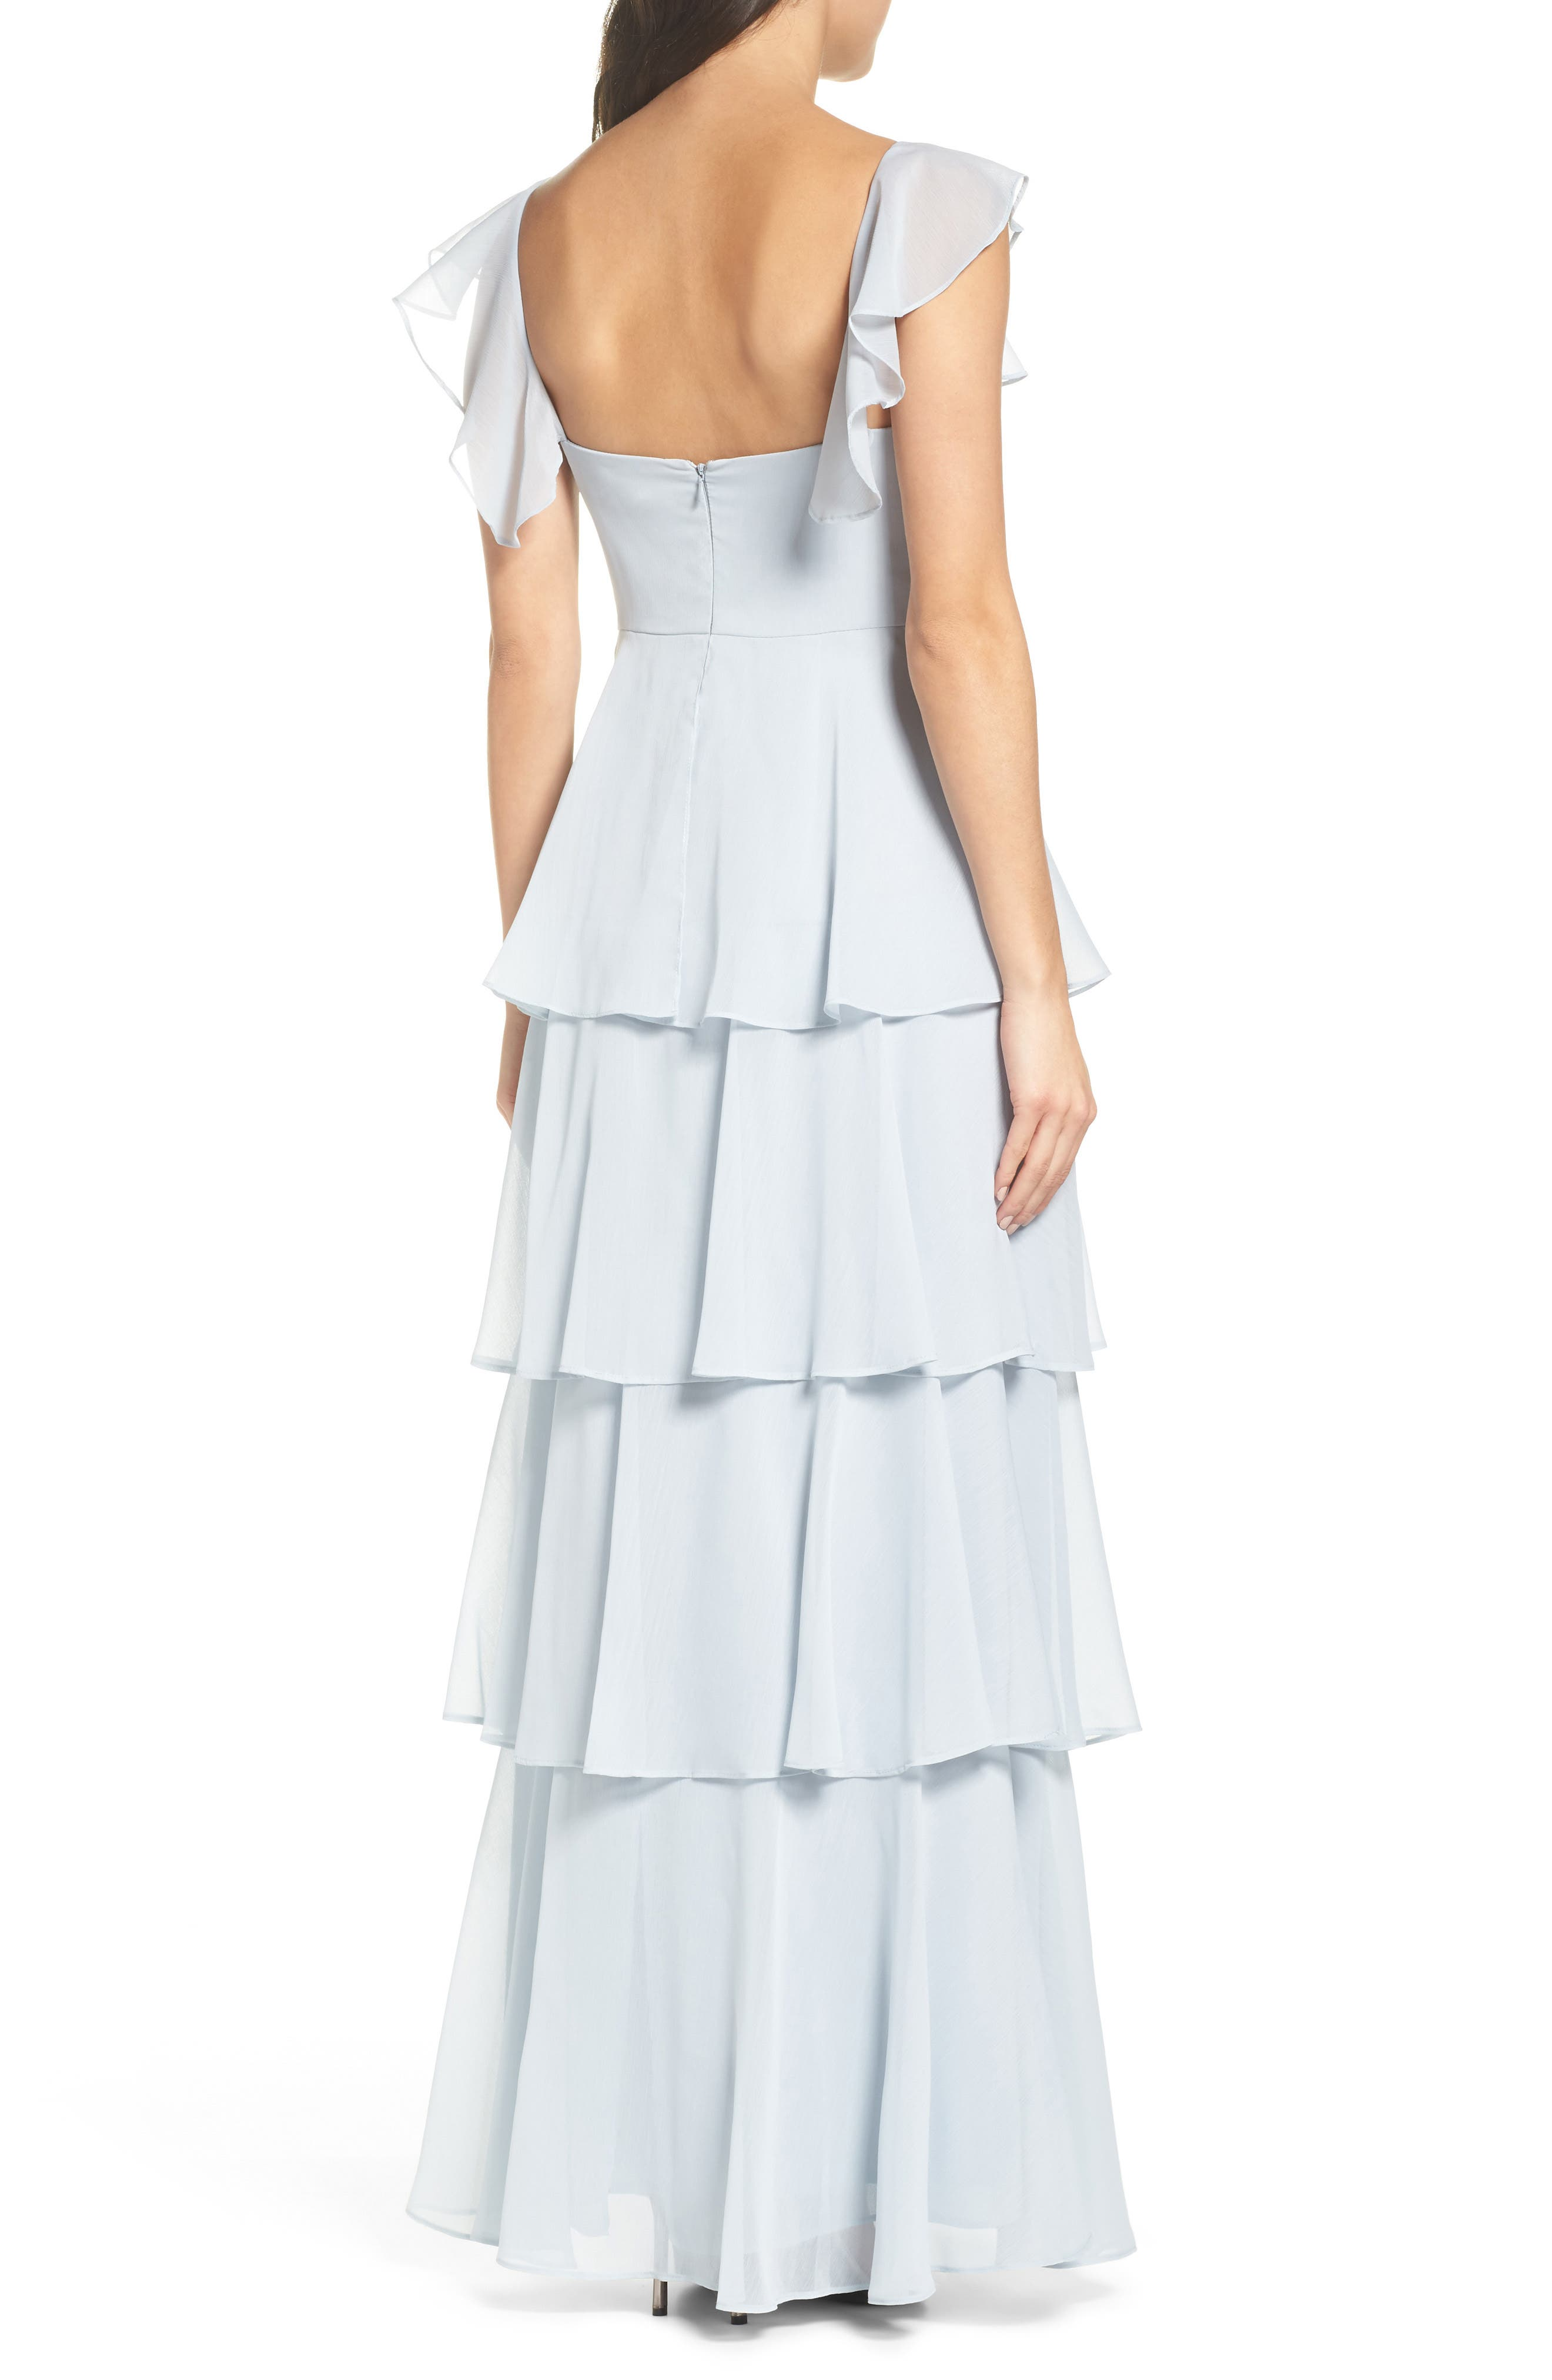 Abby Off the Shoulder Tiered Dress,                             Alternate thumbnail 2, color,                             Ocean Mist